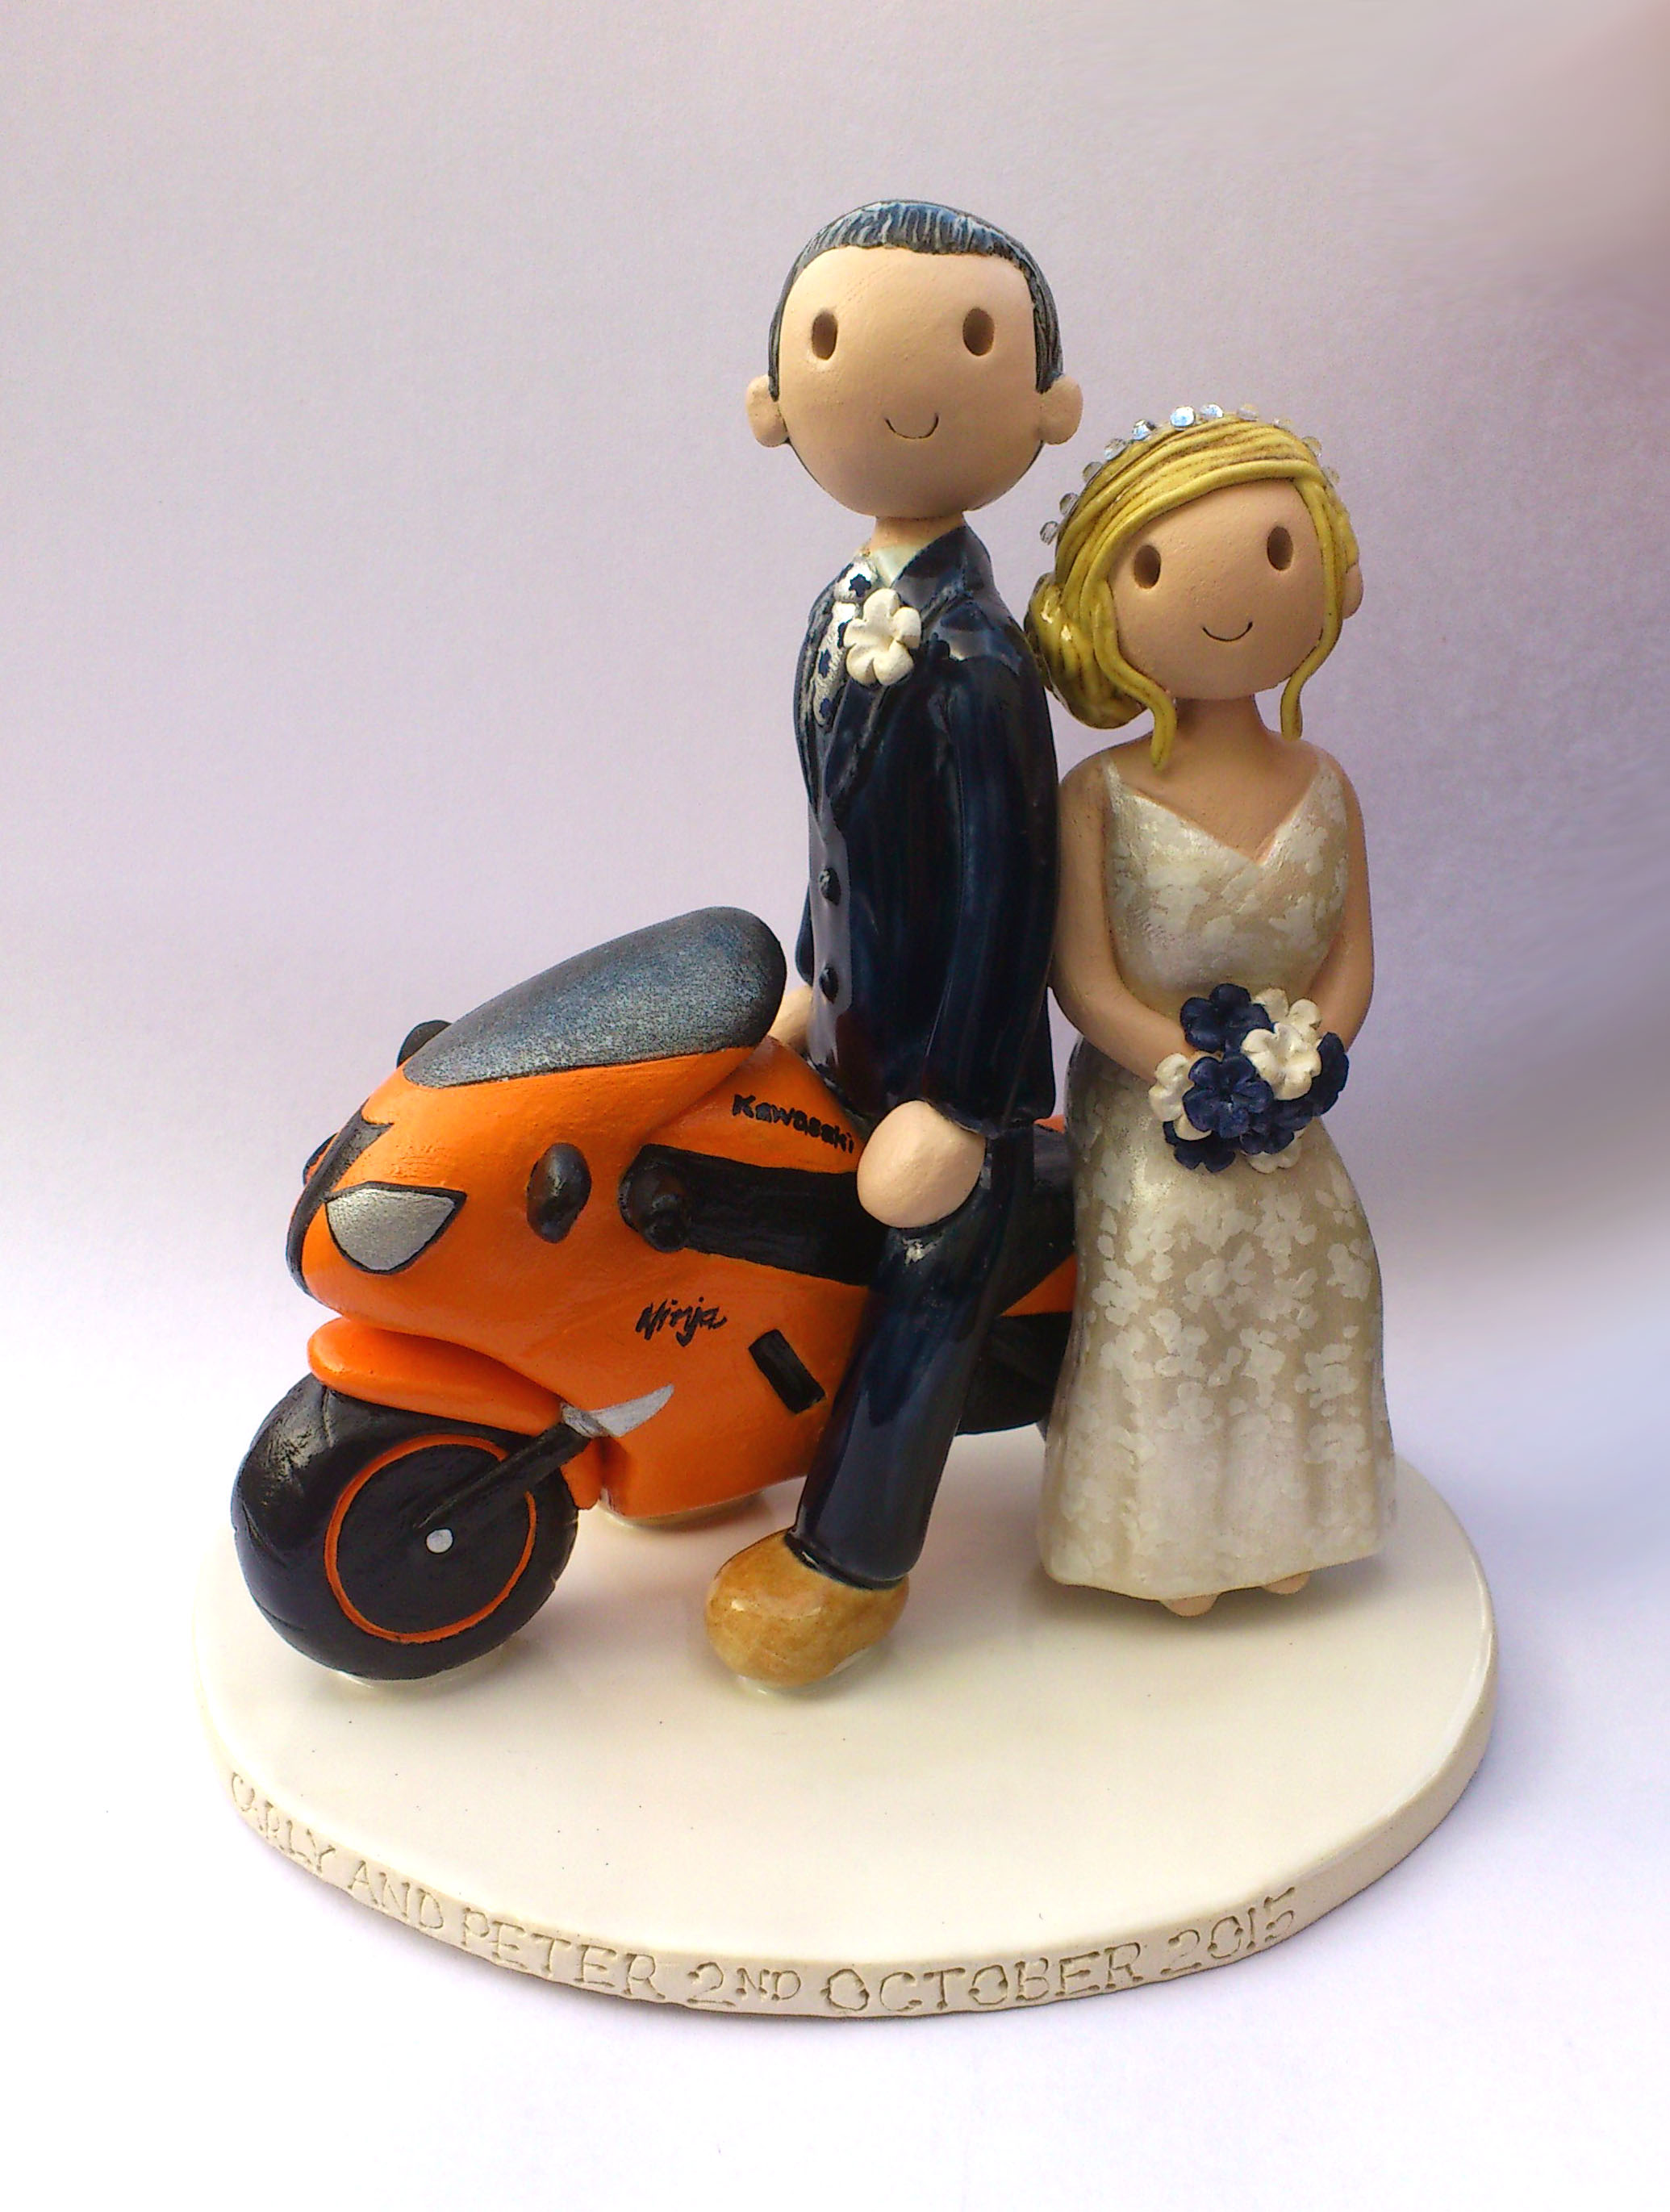 Personalised Clay Wedding Cake Toppers Uk